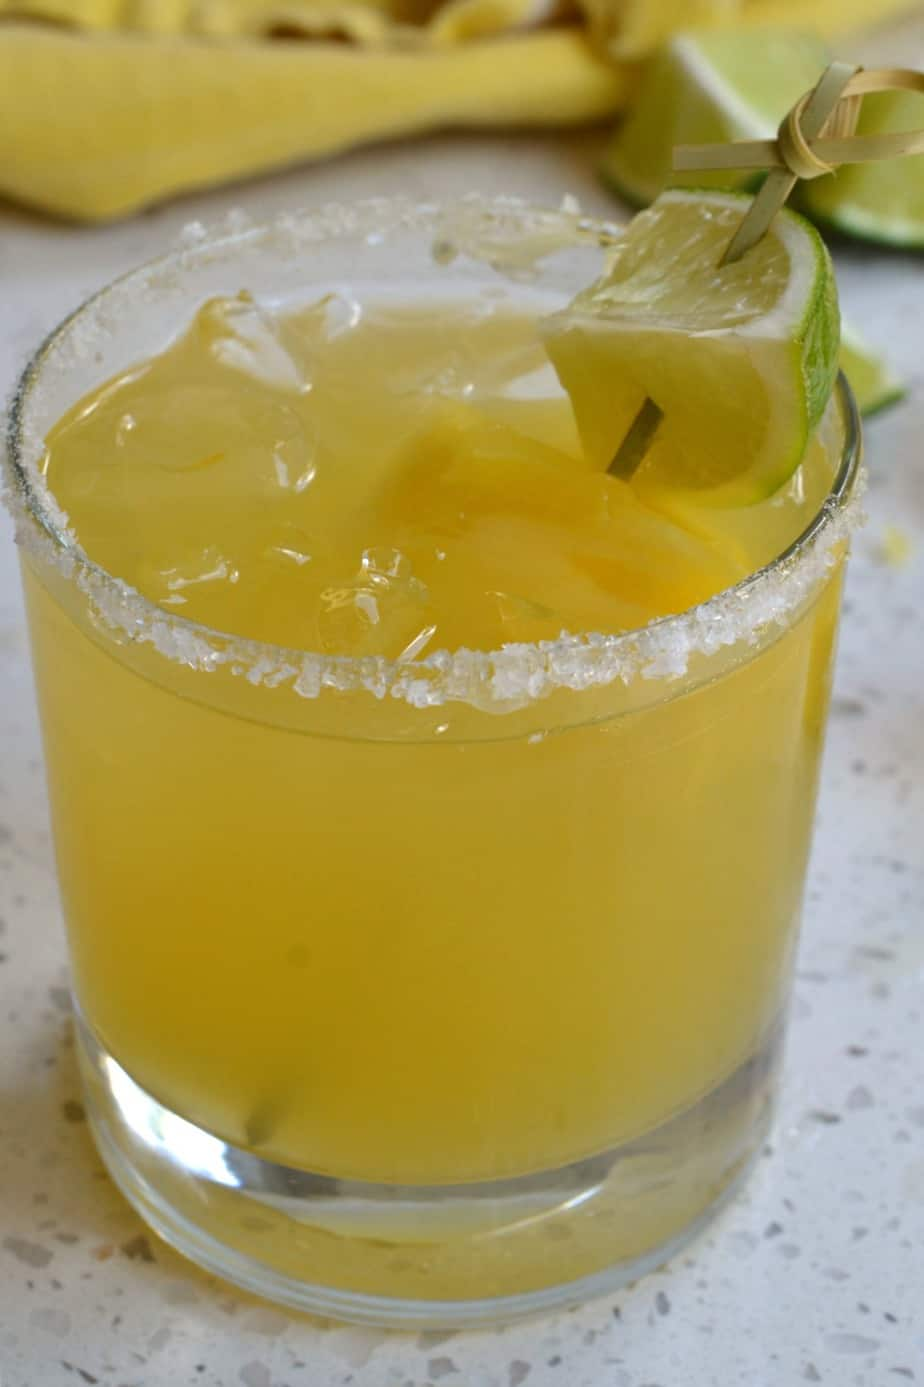 Party perfect delicious refreshing Pineapple Margaritas made two ways both in less than five minutes.